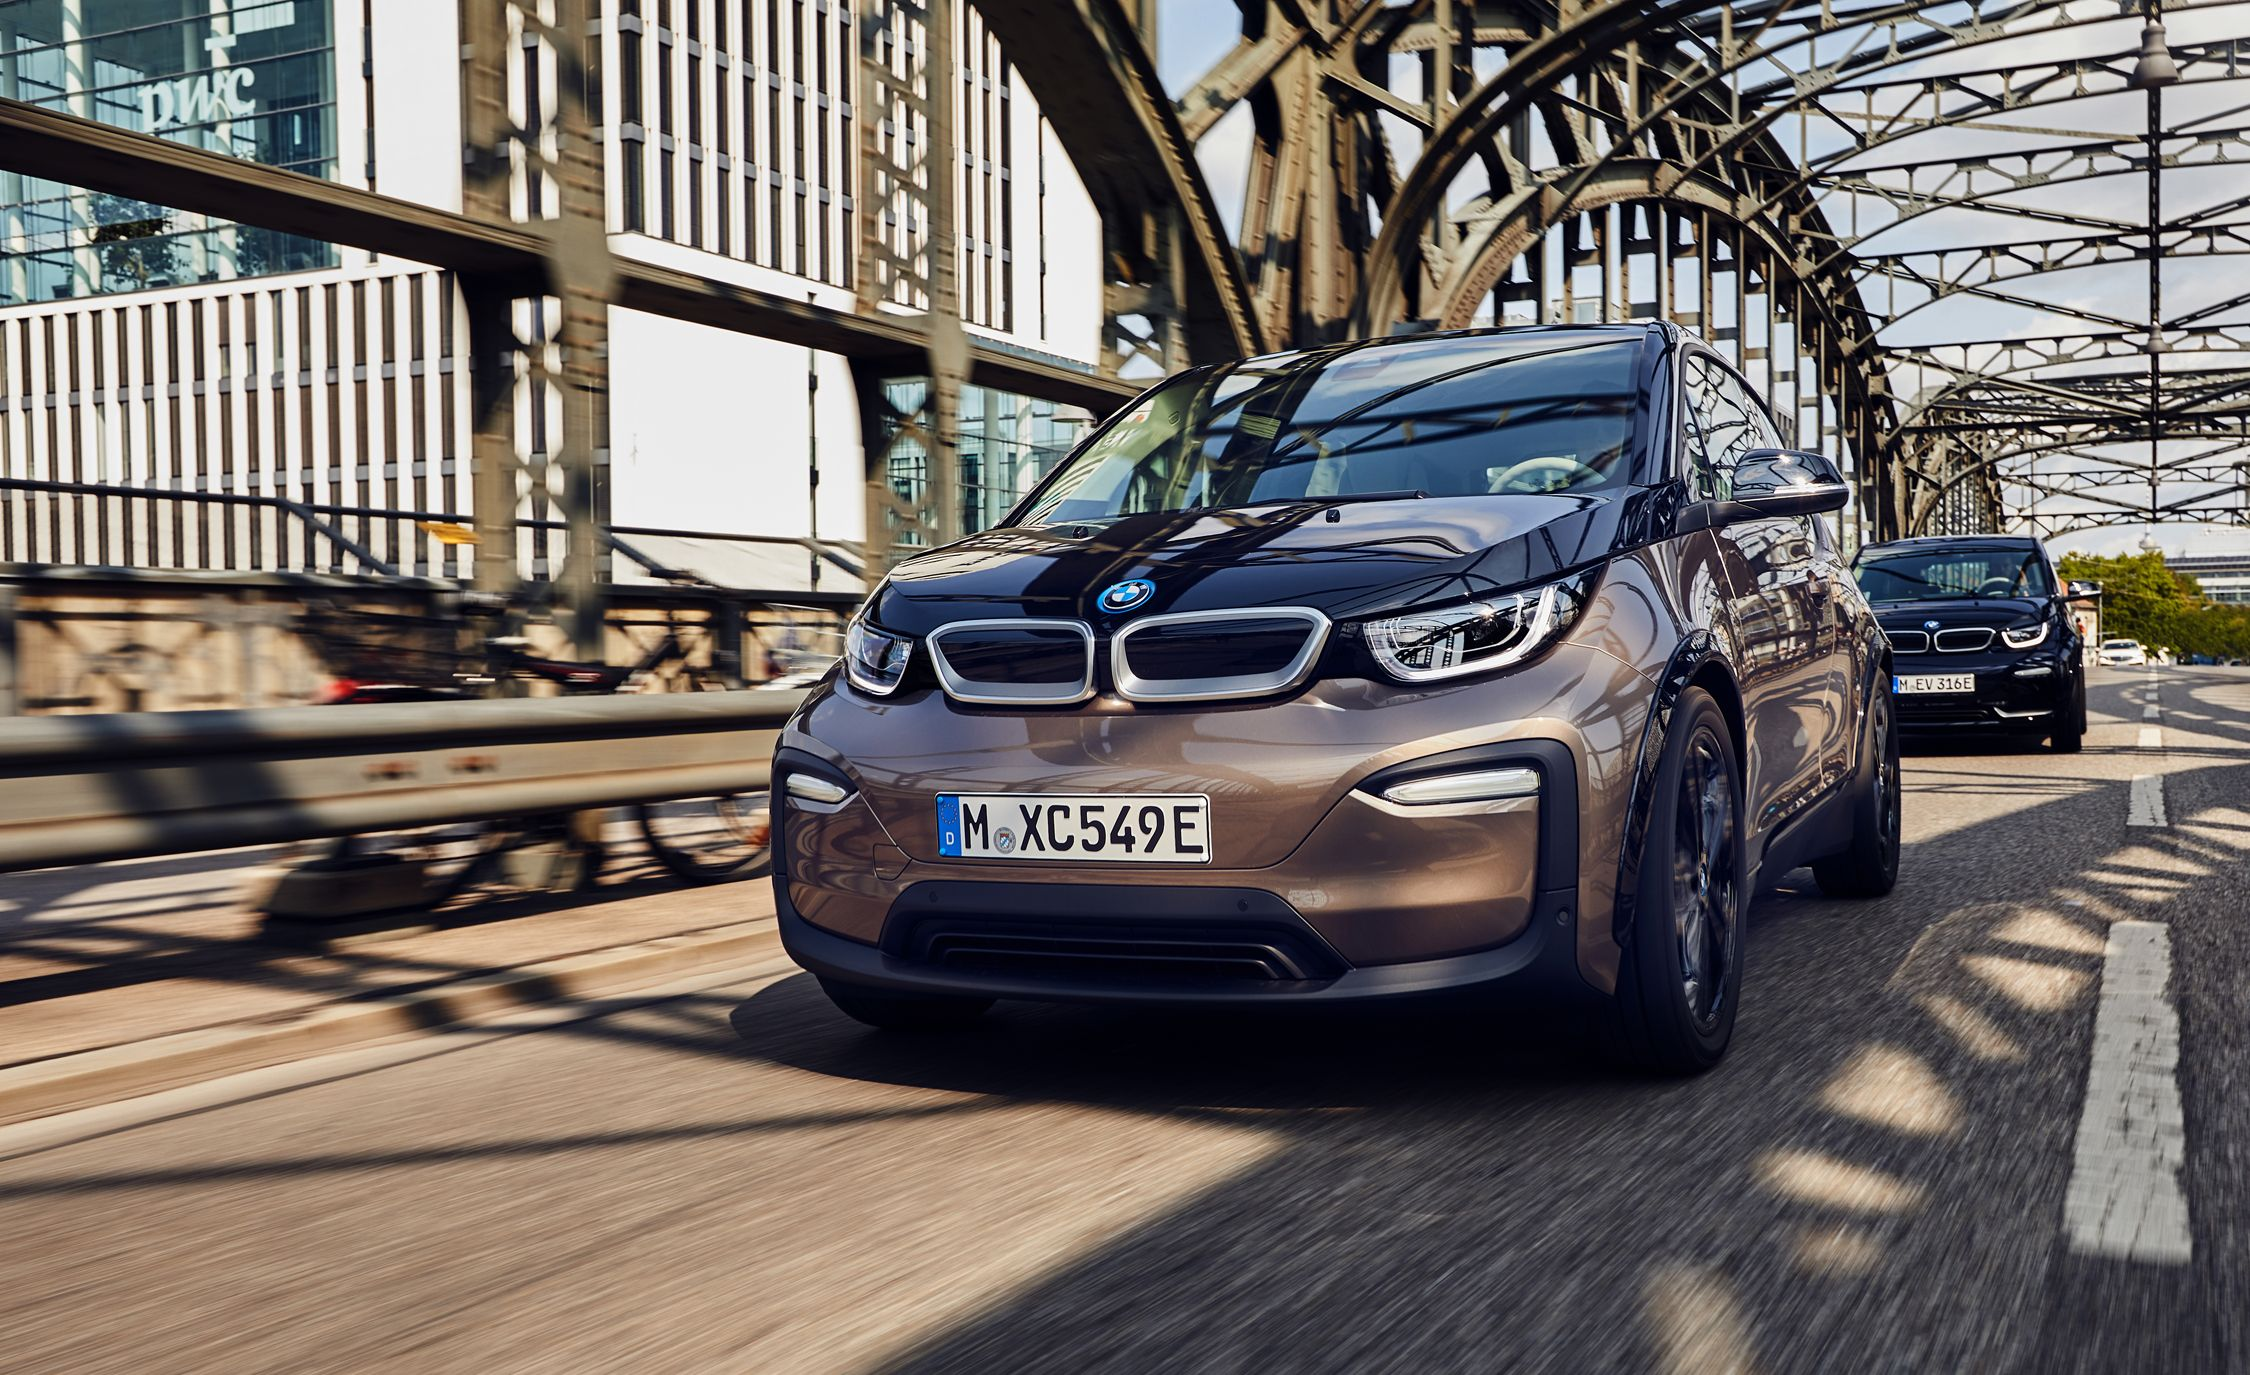 2019 BMW i3 EV Has More Range, Not Much Better Than Nissan Leaf